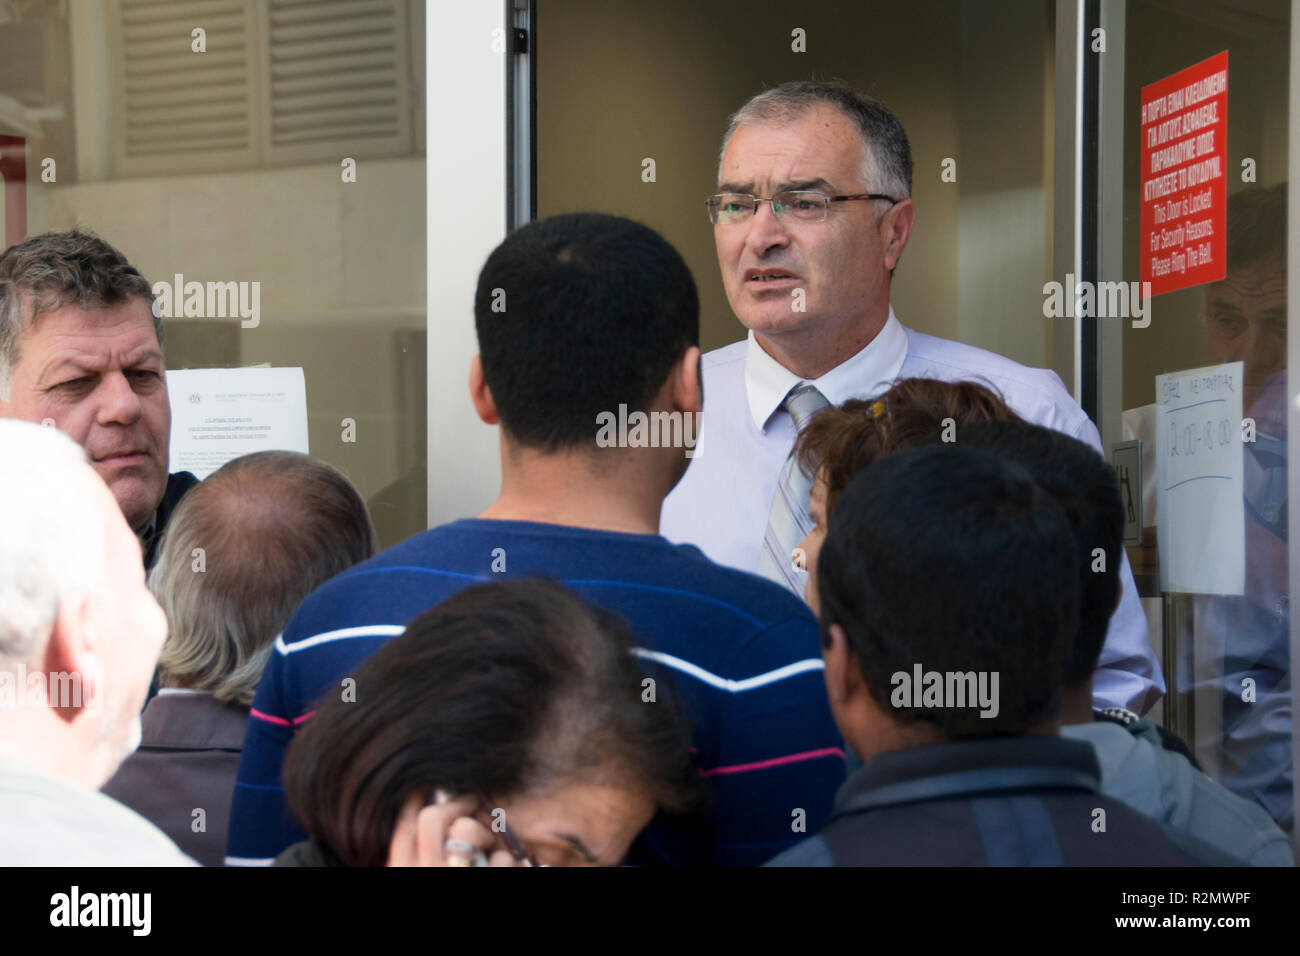 Nicosia, Cyprus 2013. Concerned bank manager addresses concerned crowd of customers moments after bank opens for the first time in weeks - Stock Image